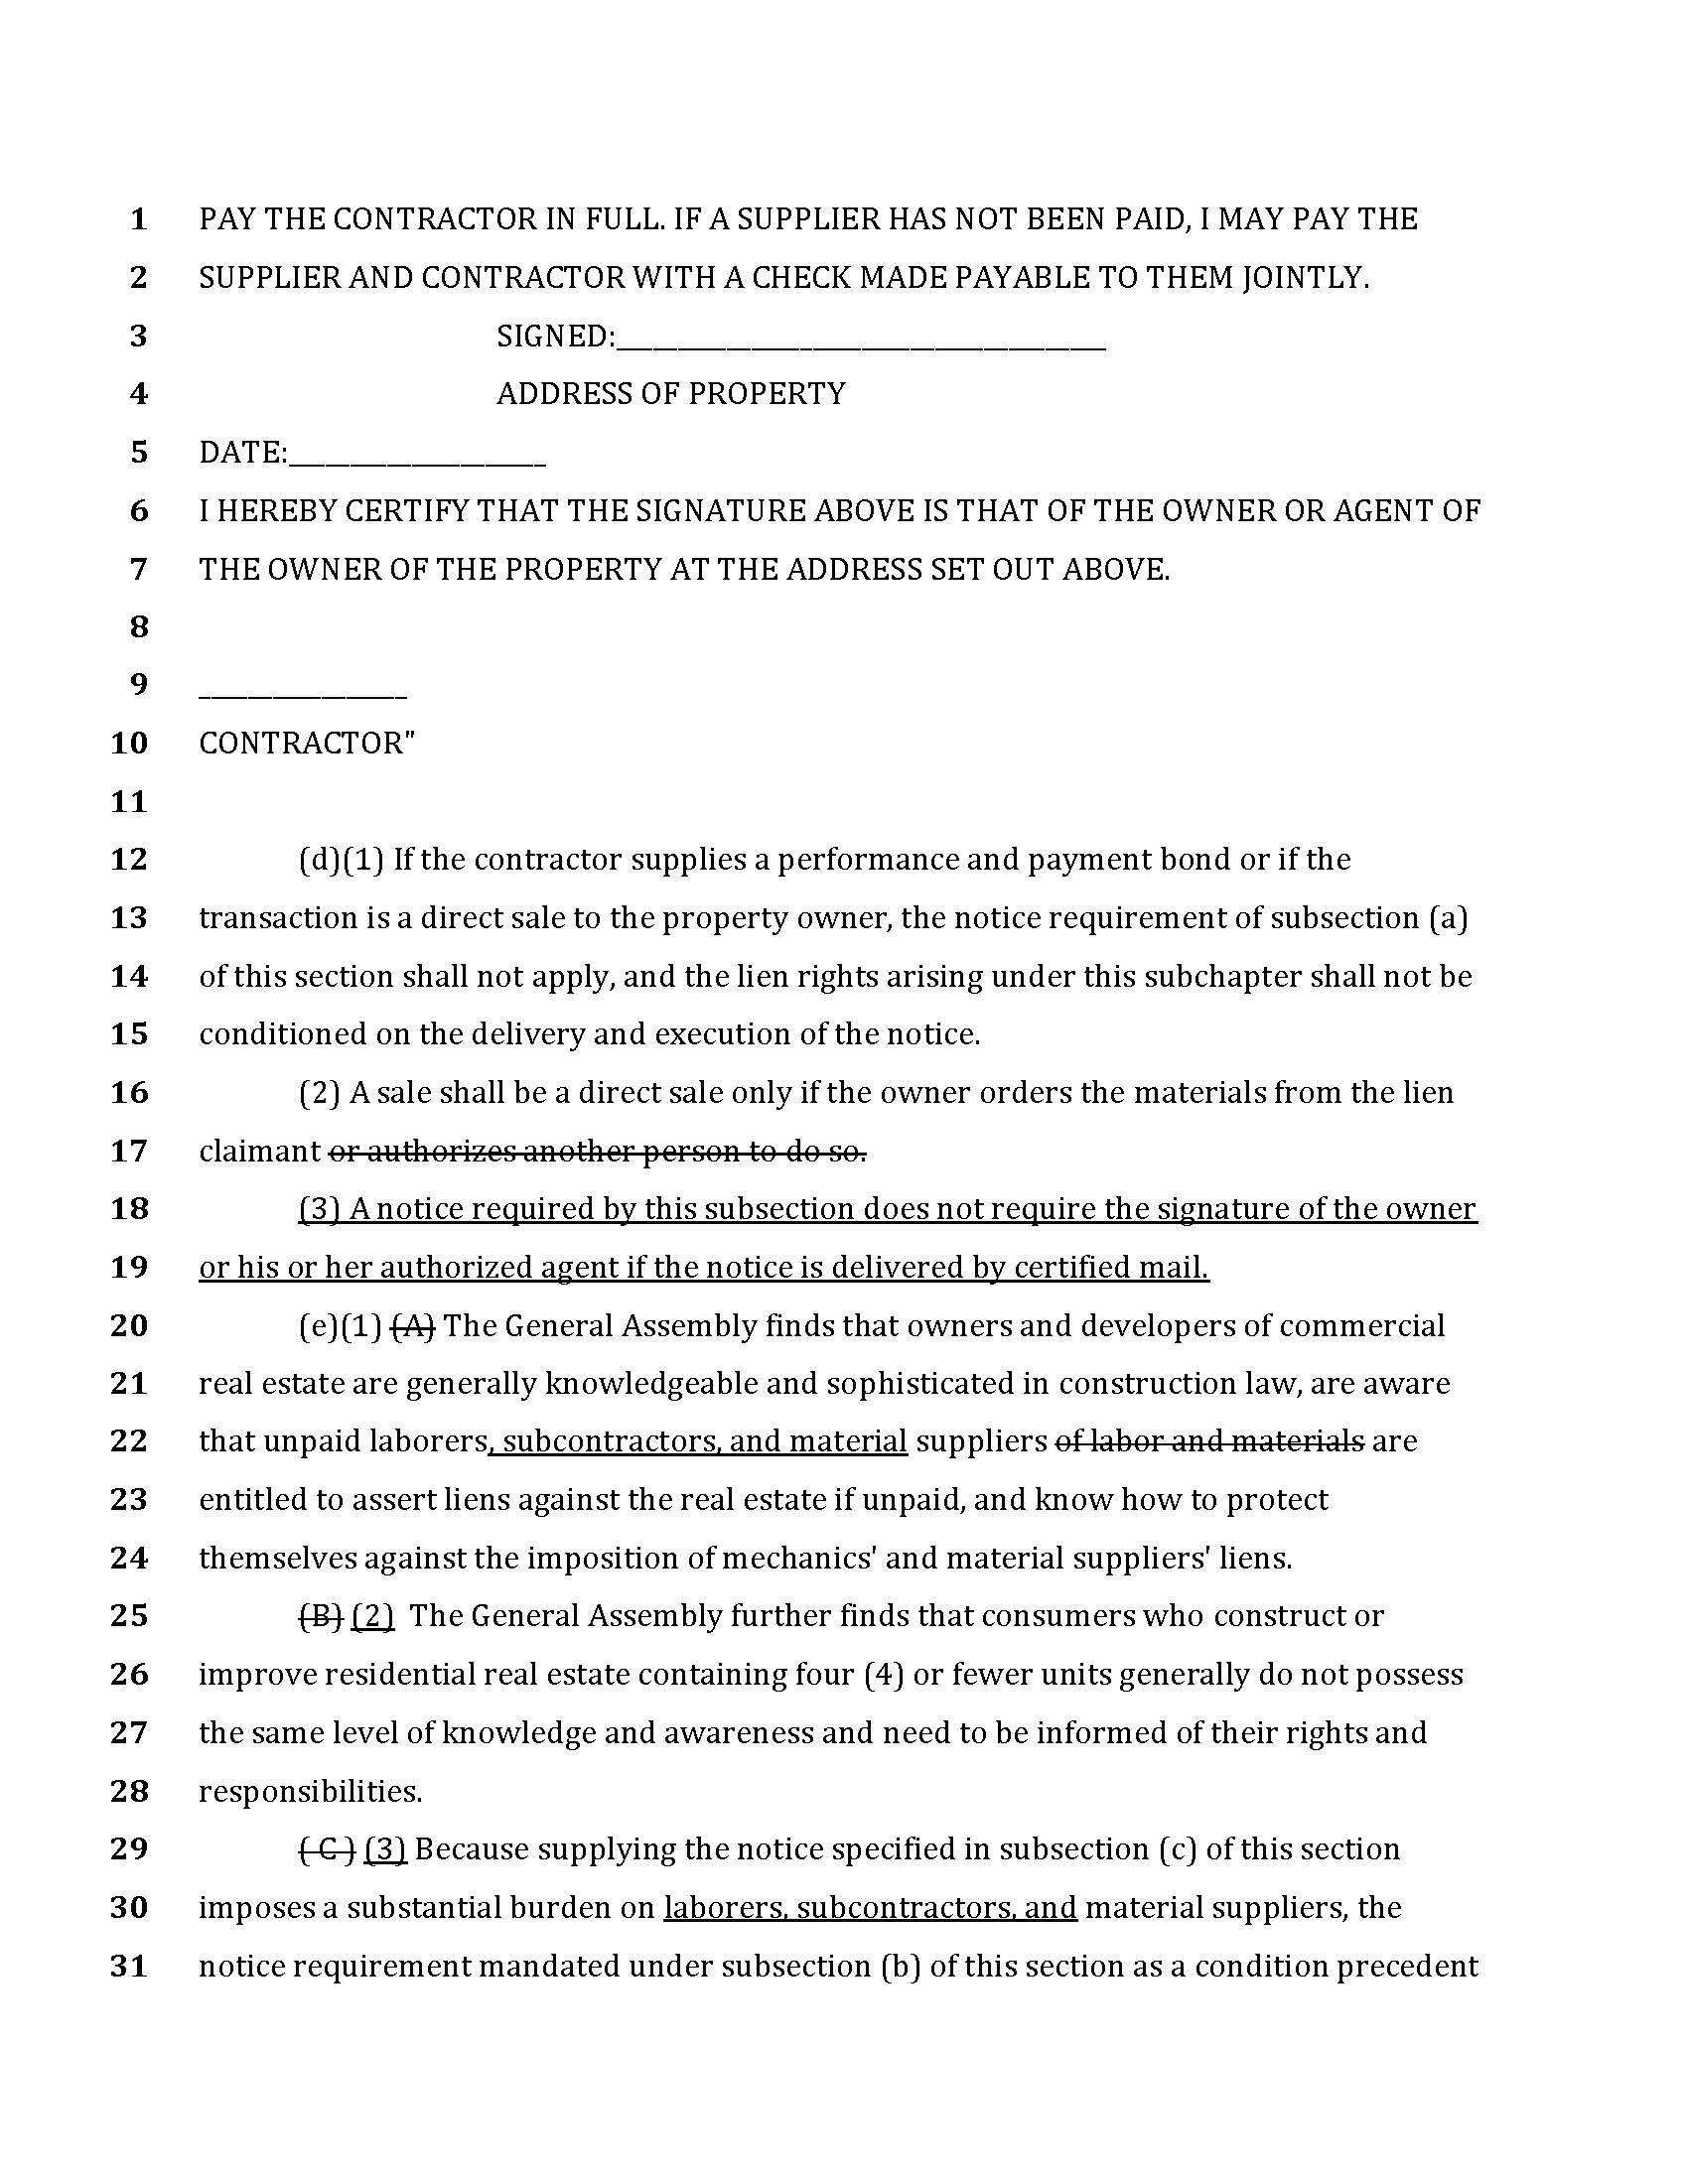 final-bill-lien-law-revisions_Page_07.jpg